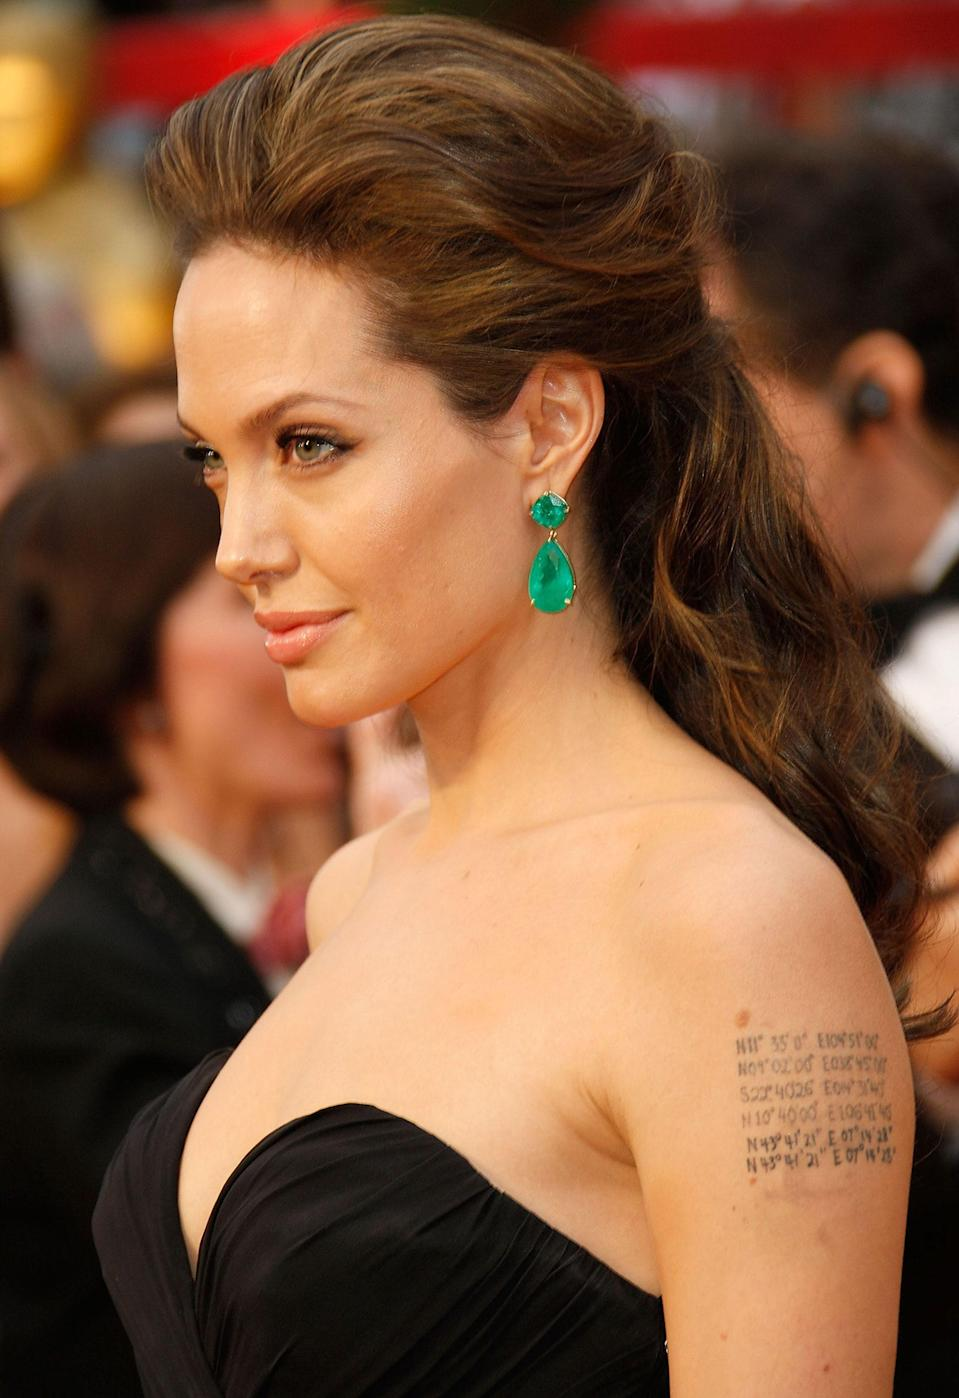 Diamonds aren't the only way to shine: When Angelina Jolie needed earrings with oomph, the actress-director sought out Lorraine Schwartz and a pair of oversized emeralds. The 115-carat drop earrings that served as Jolie's 2015 red carpet gems inspired a wave of imitators and helped to increase demand for boldly colored stones.